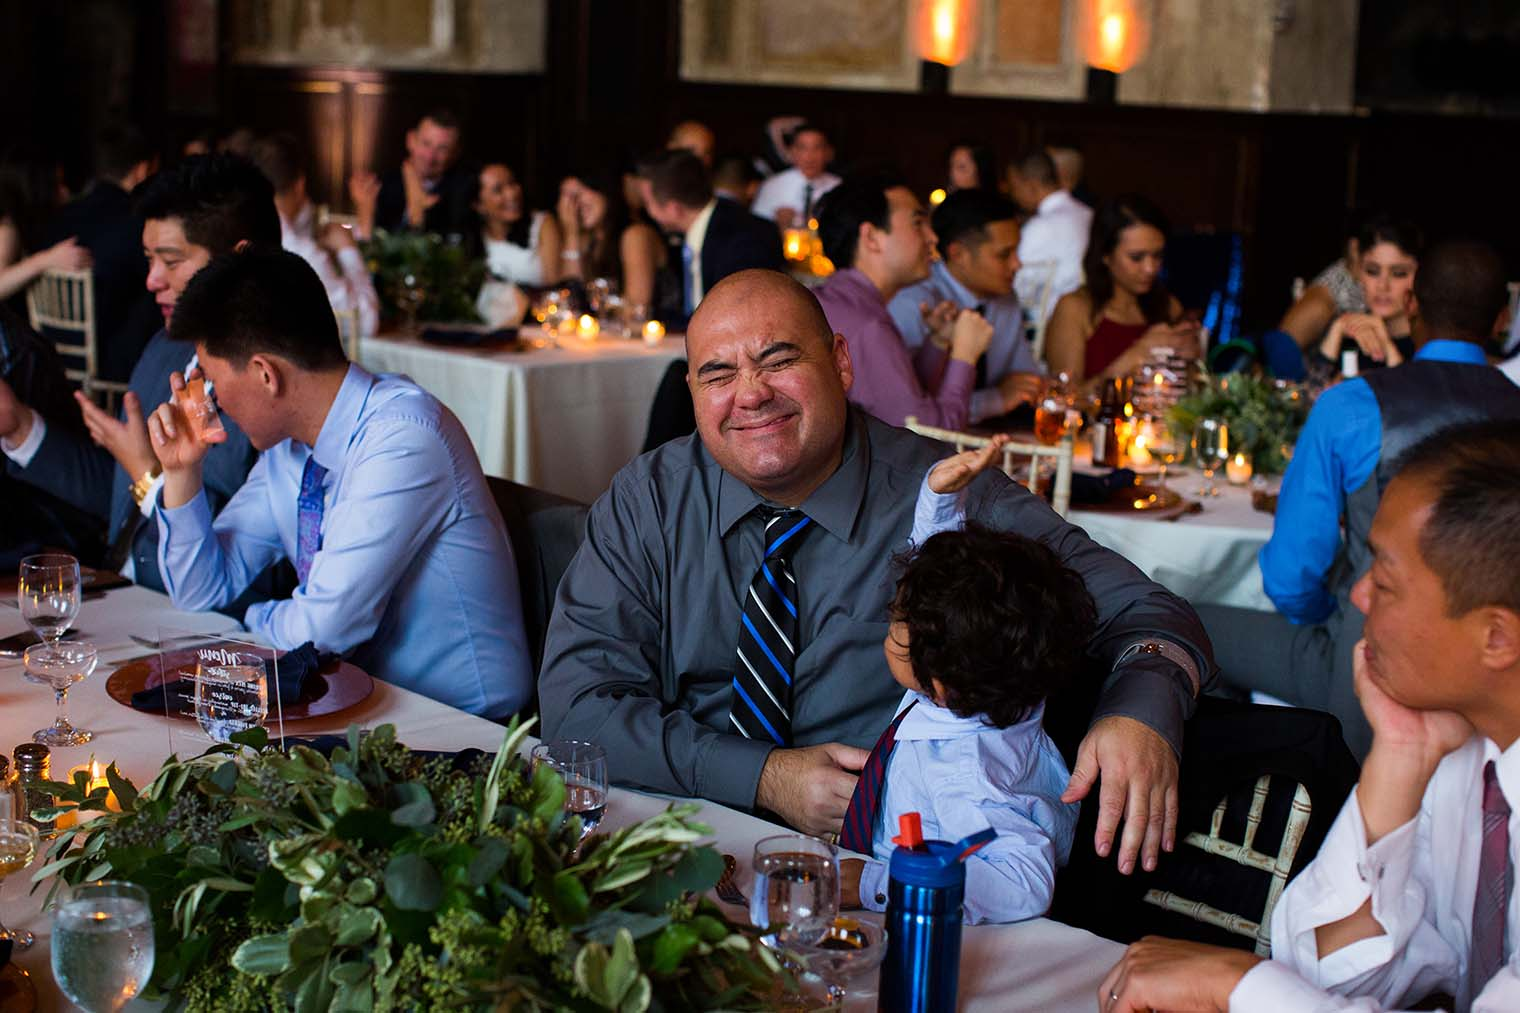 16th Street Station Wedding Reception Photos